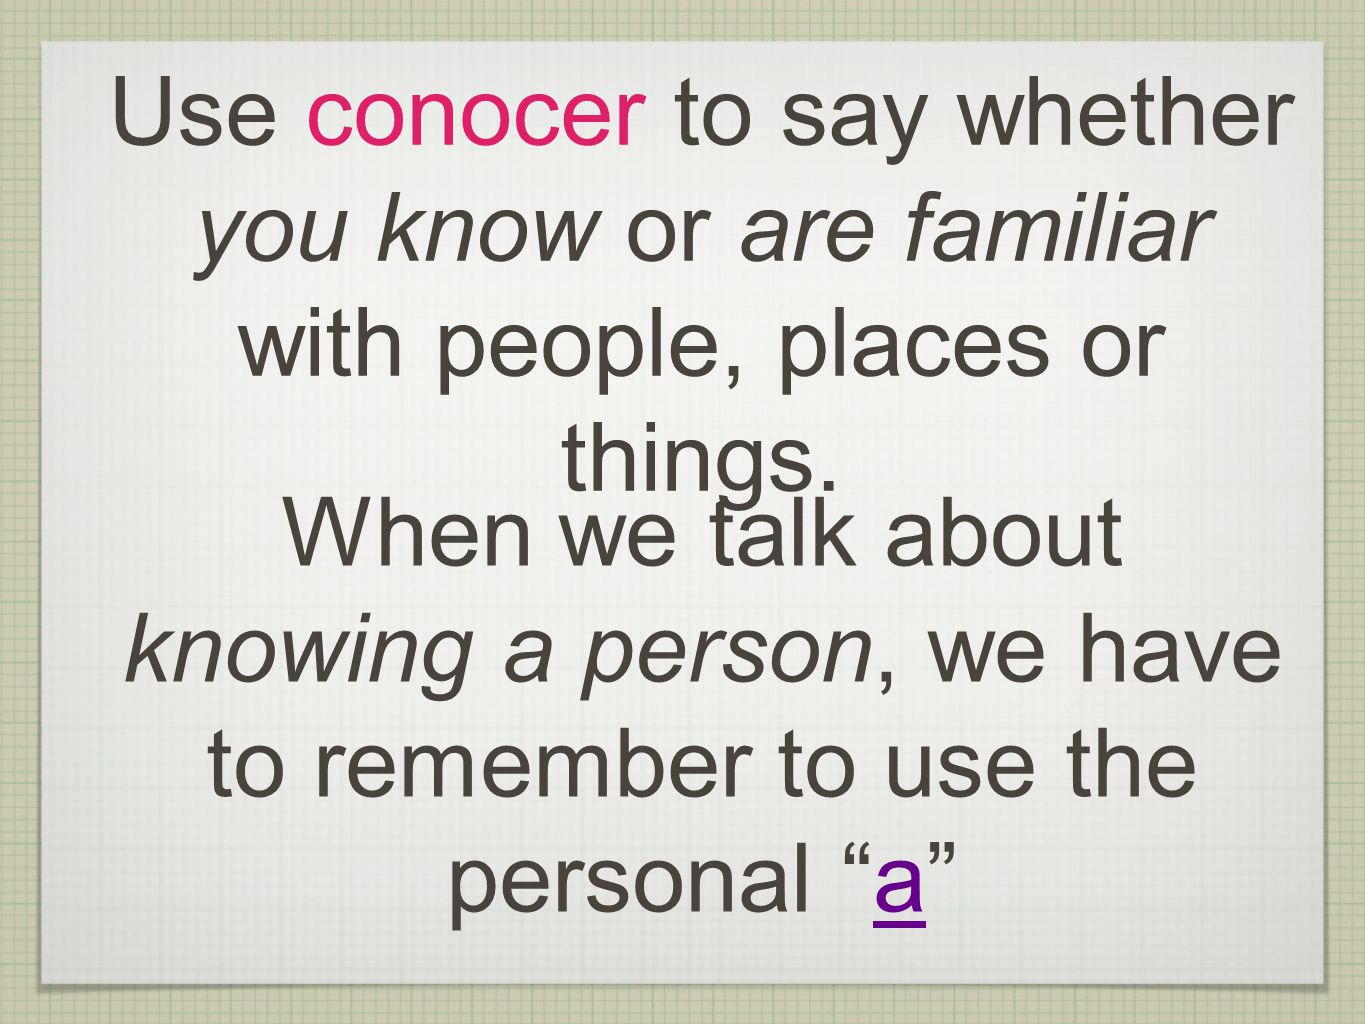 Use conocer to say whether you know or are familiar with people, places or things. When we talk about knowing a person, we have to remember to use the